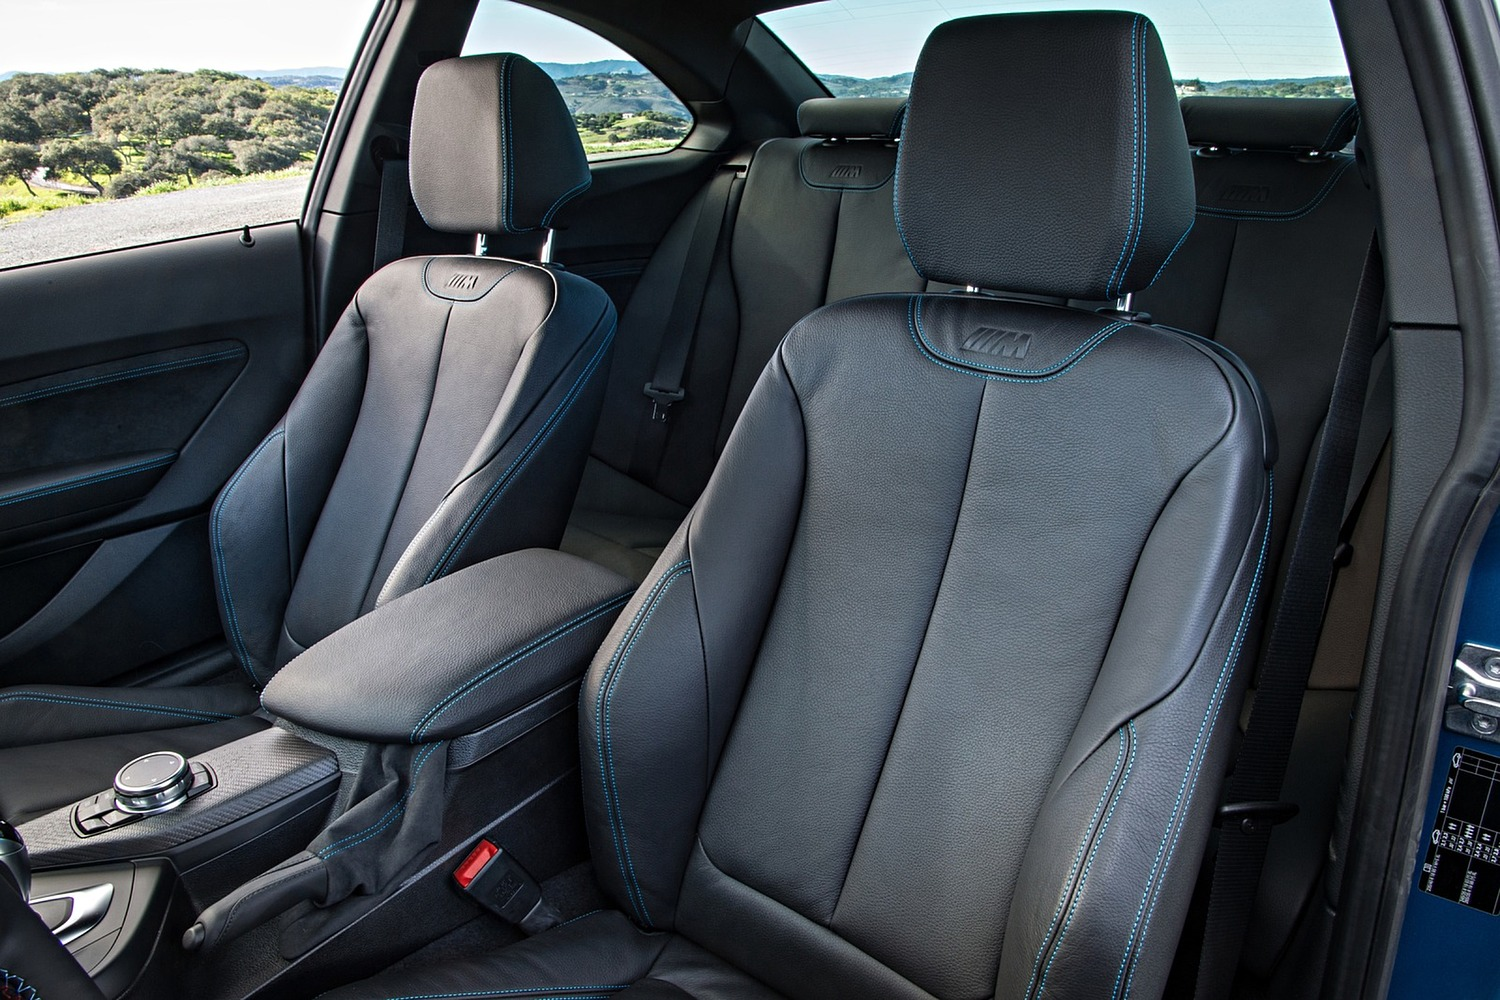 BMW M2 Coupe Interior (2016 model year shown)